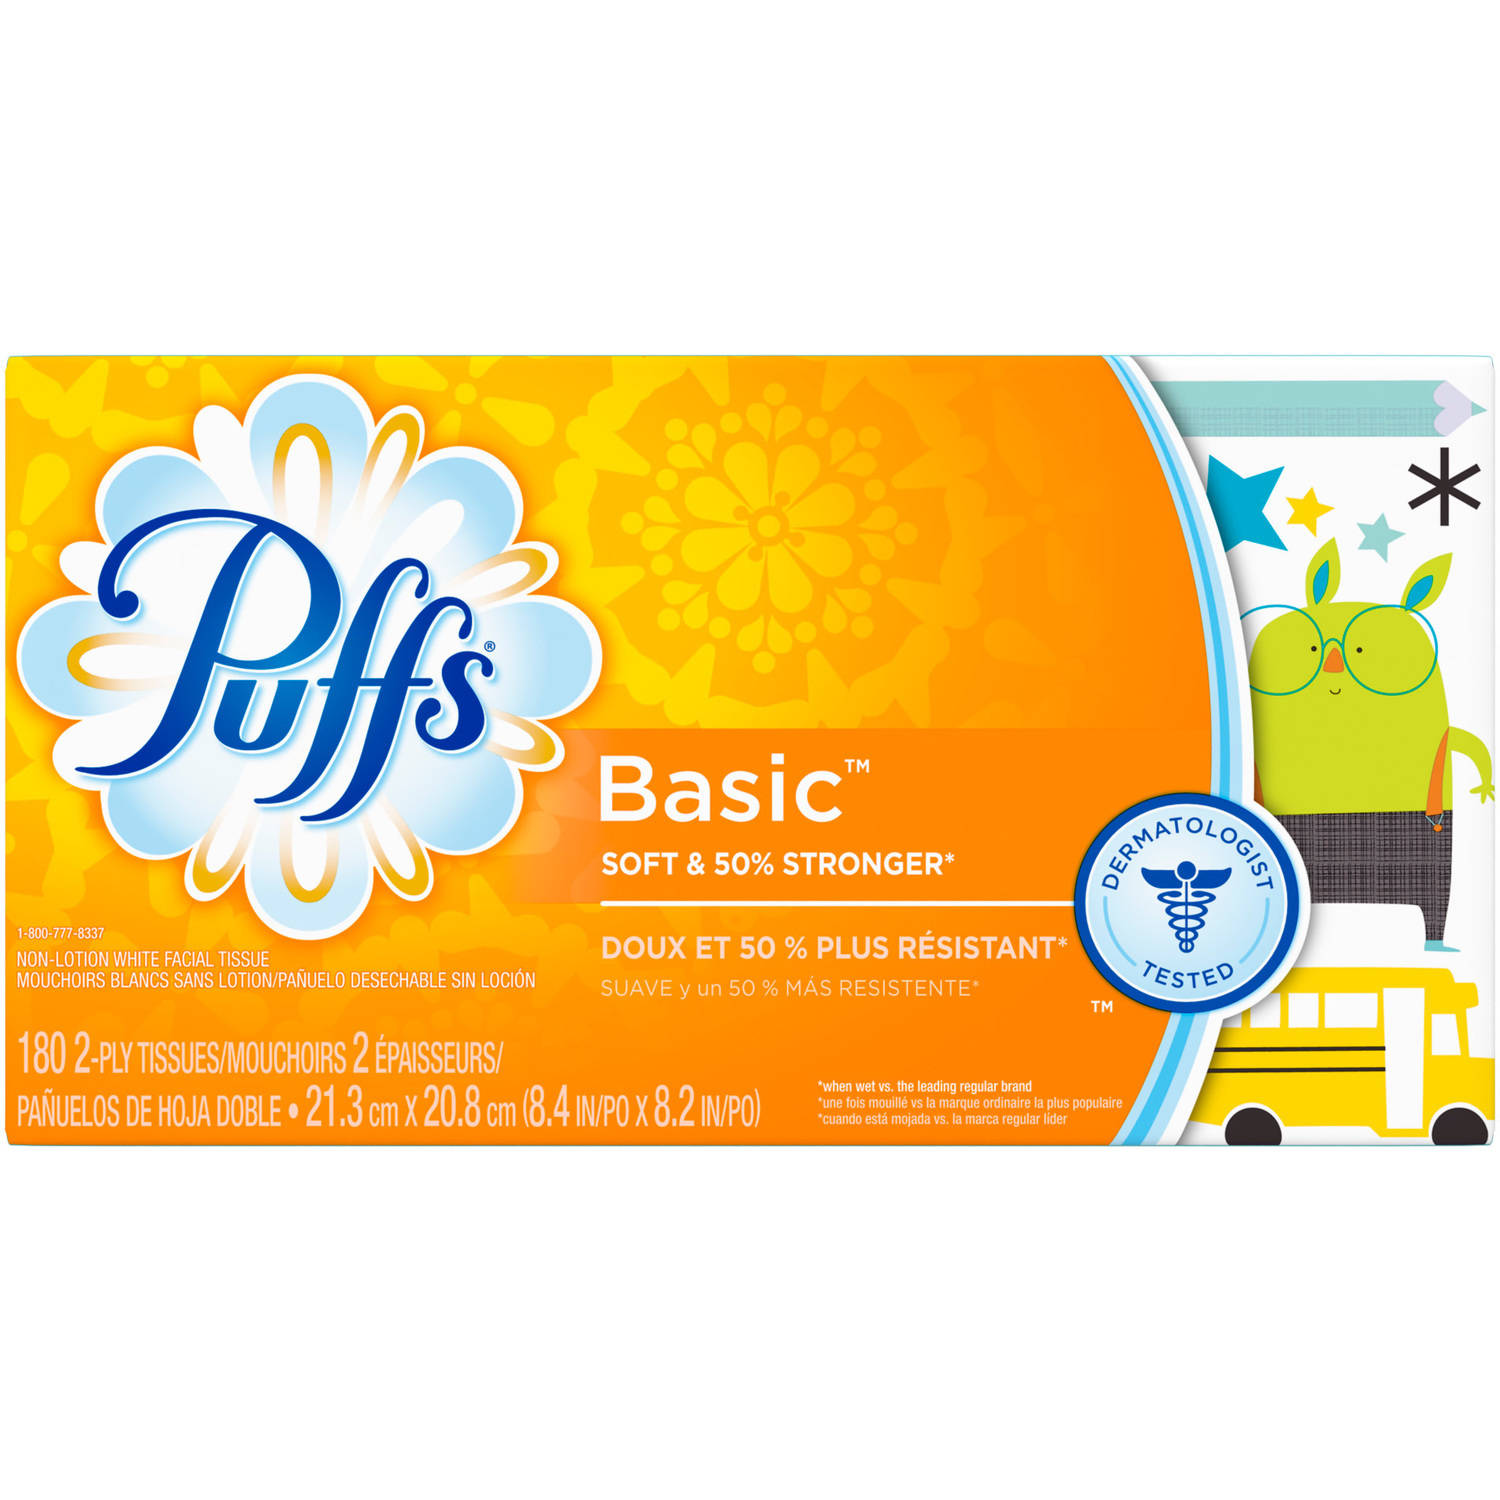 Puffs Basic Facial Tissues, 1 family box, 180 tissues per box